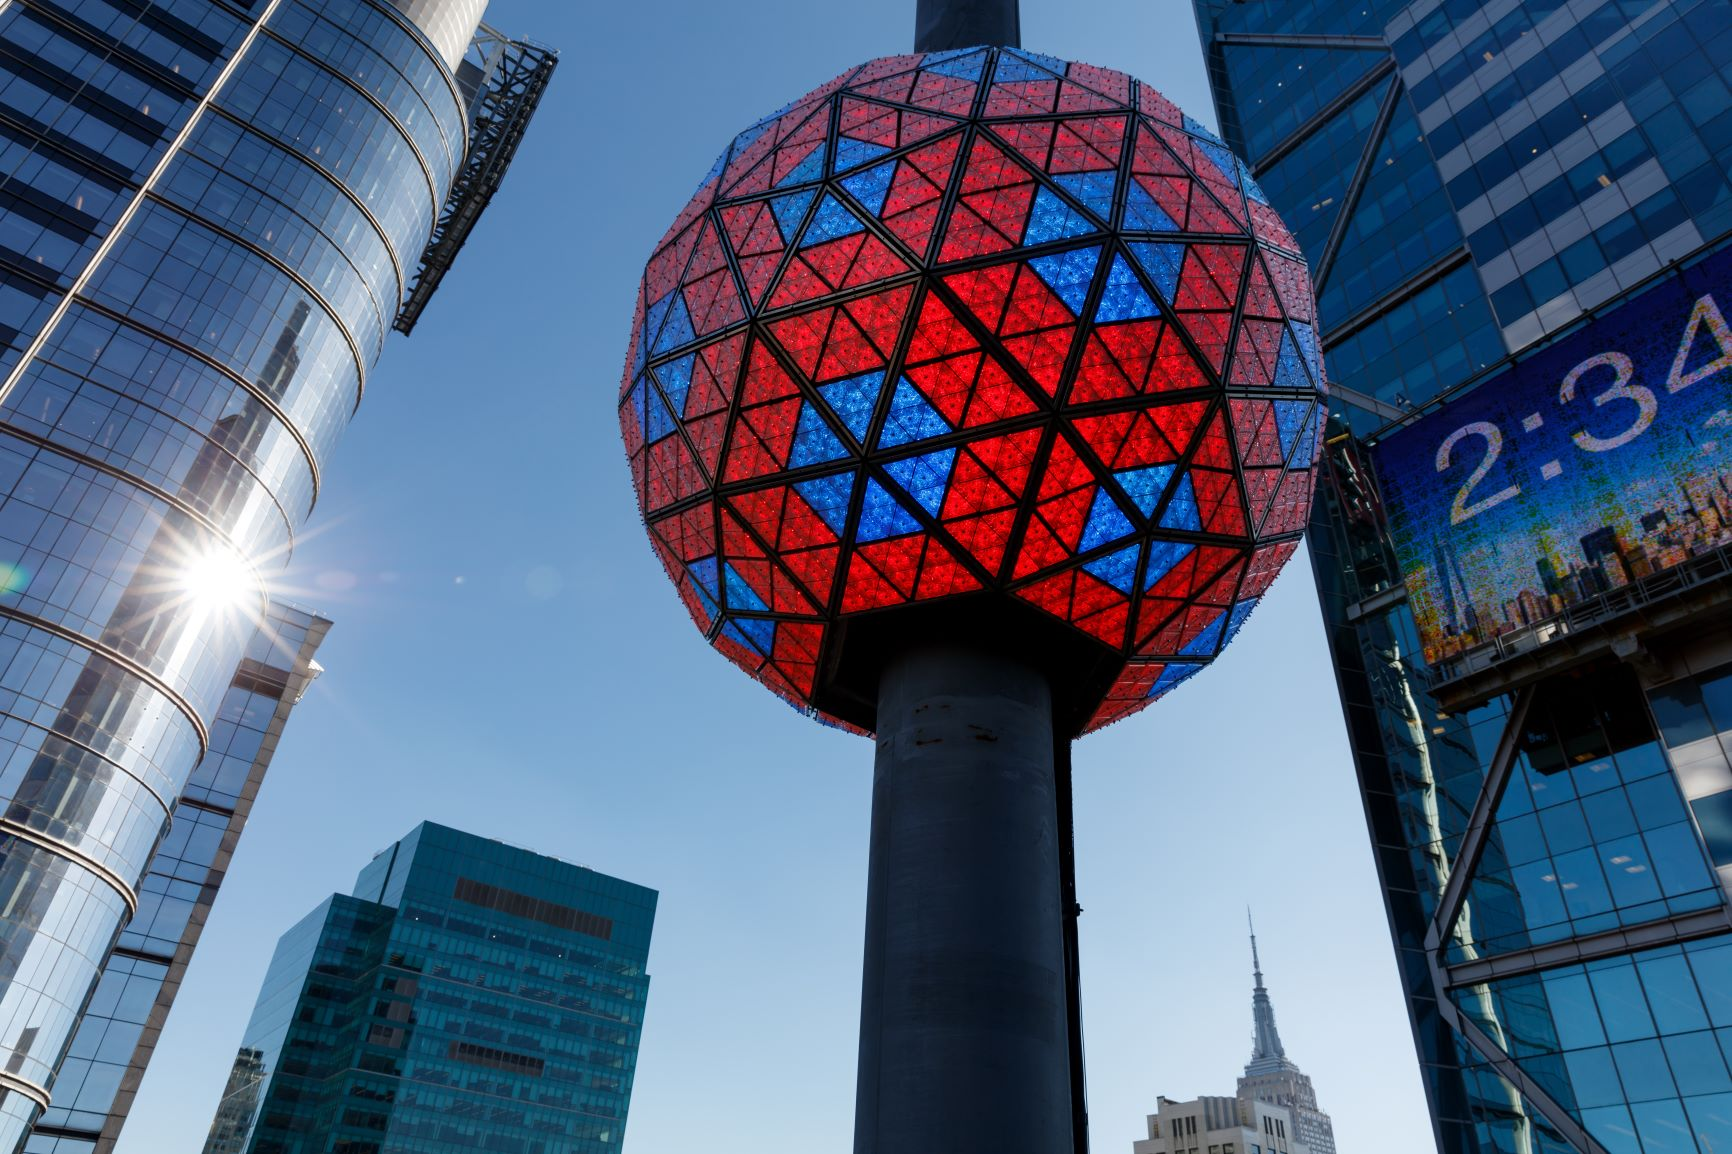 The Times Square Ball Drop will be streamed commercial-free | WhereTraveler